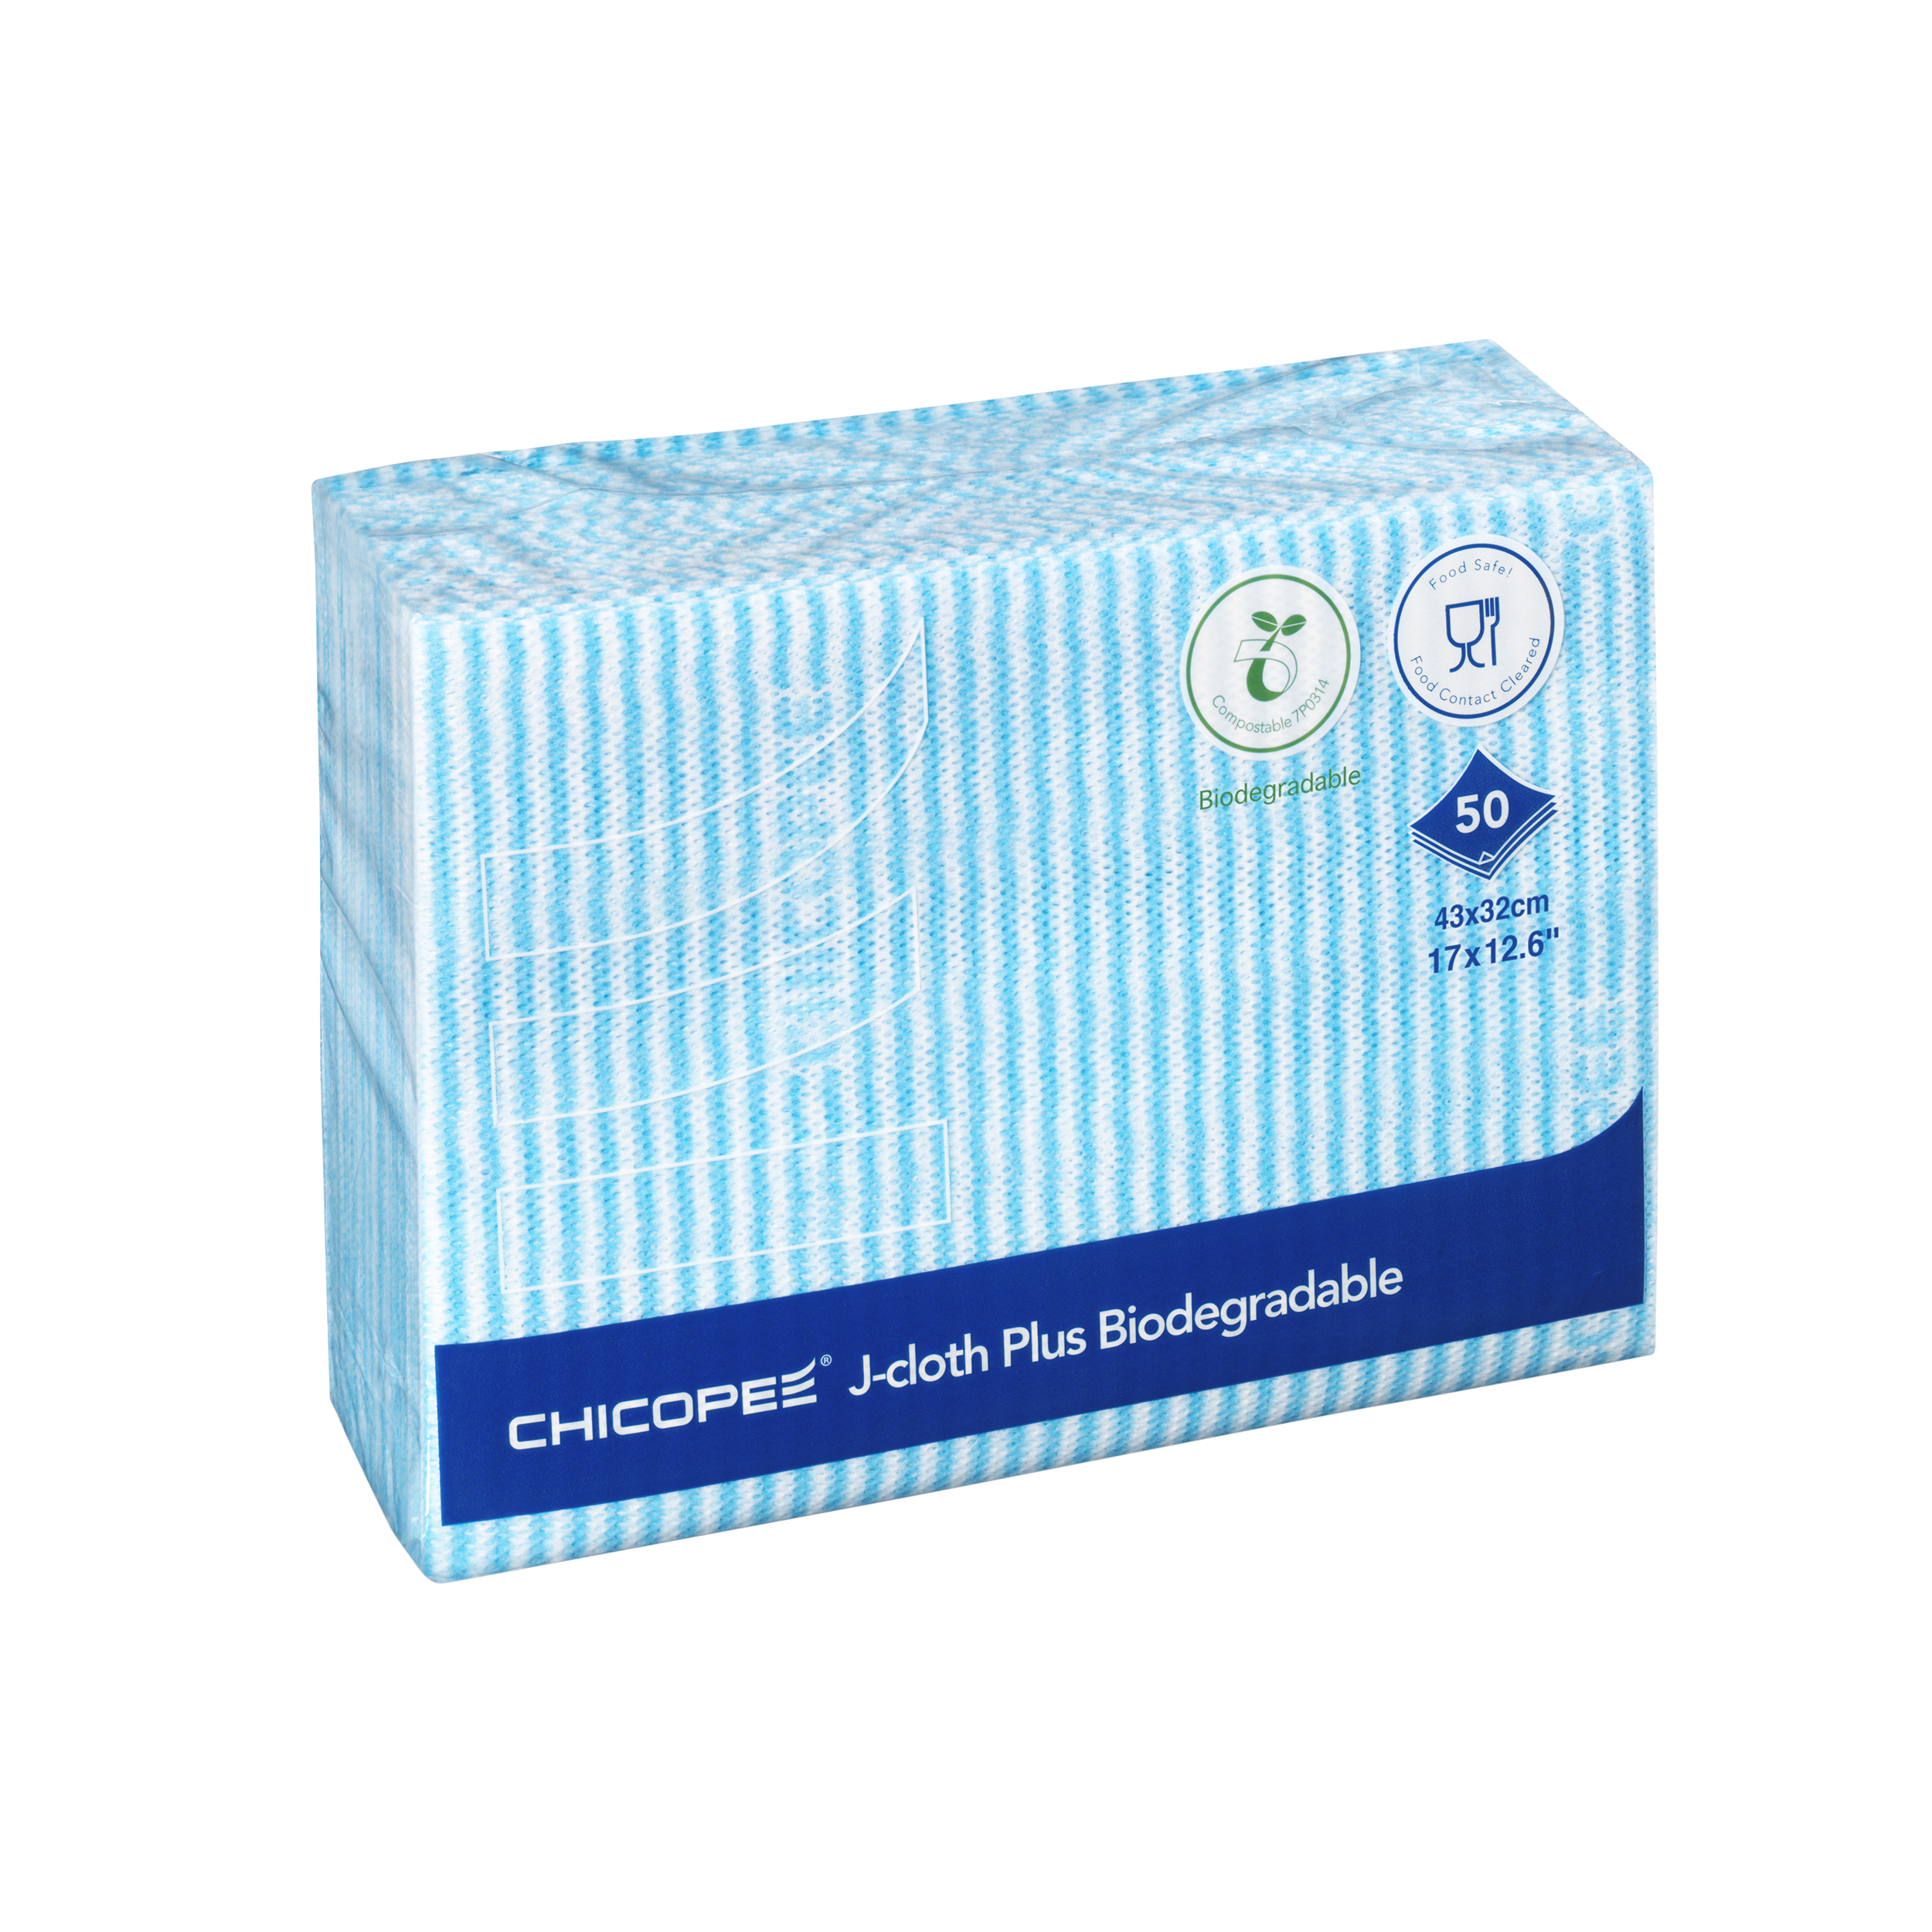 Chicopee J-Cloth Plus Biodegradable 430x320mm Blue Ref 0707117 Pack 50